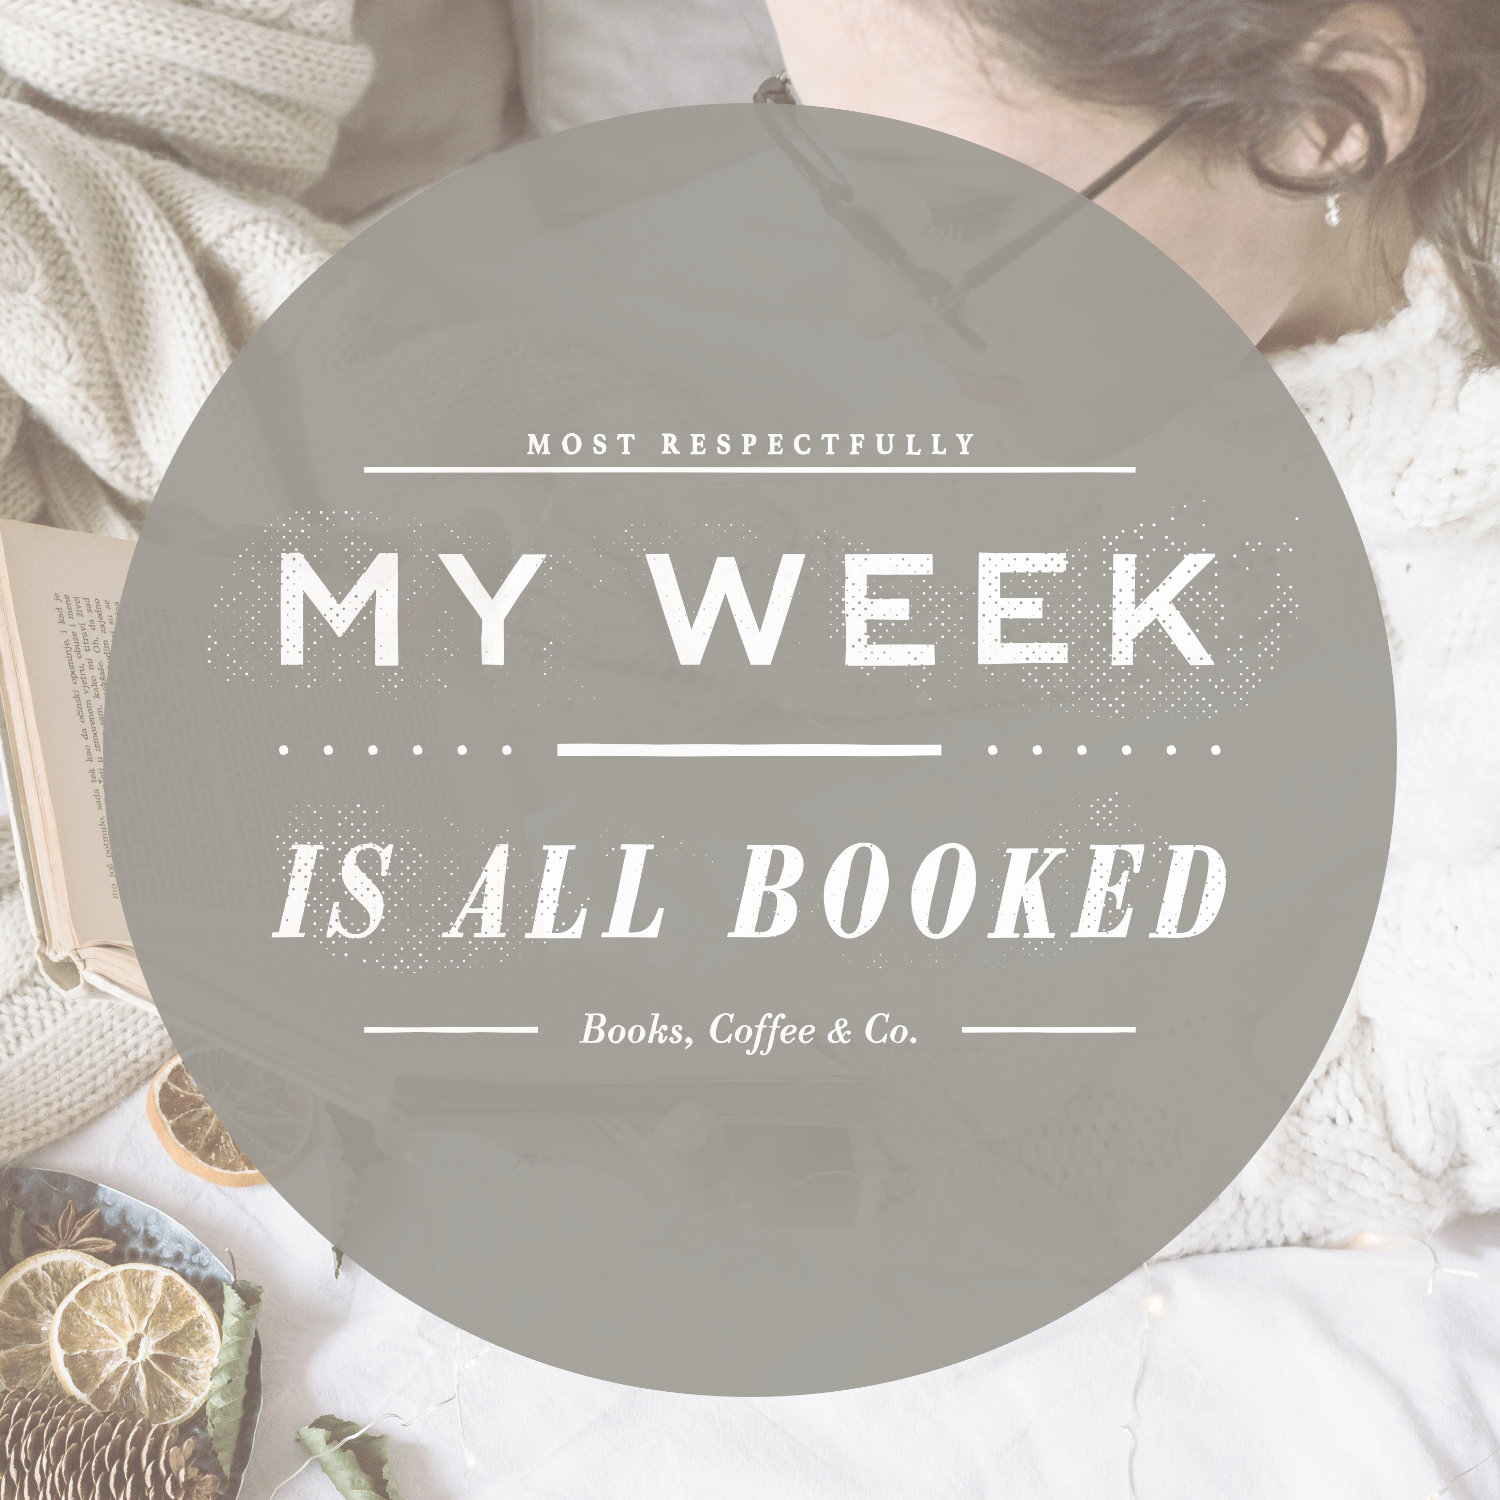 My Week Is All Booked poster - bookish images ideas by Piotr Kowalczyk